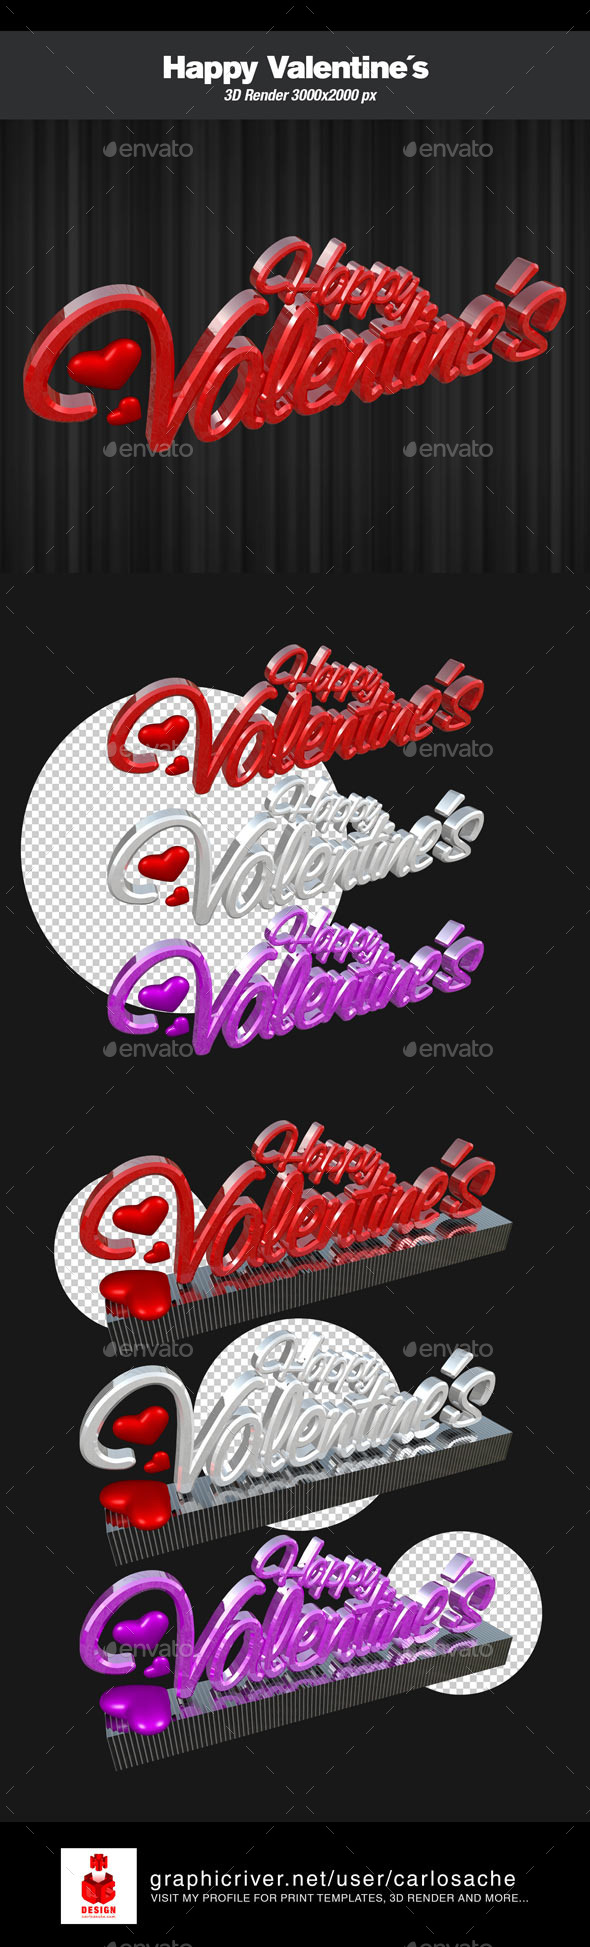 Happy Valentine´s - 3D Render Text - Text 3D Renders